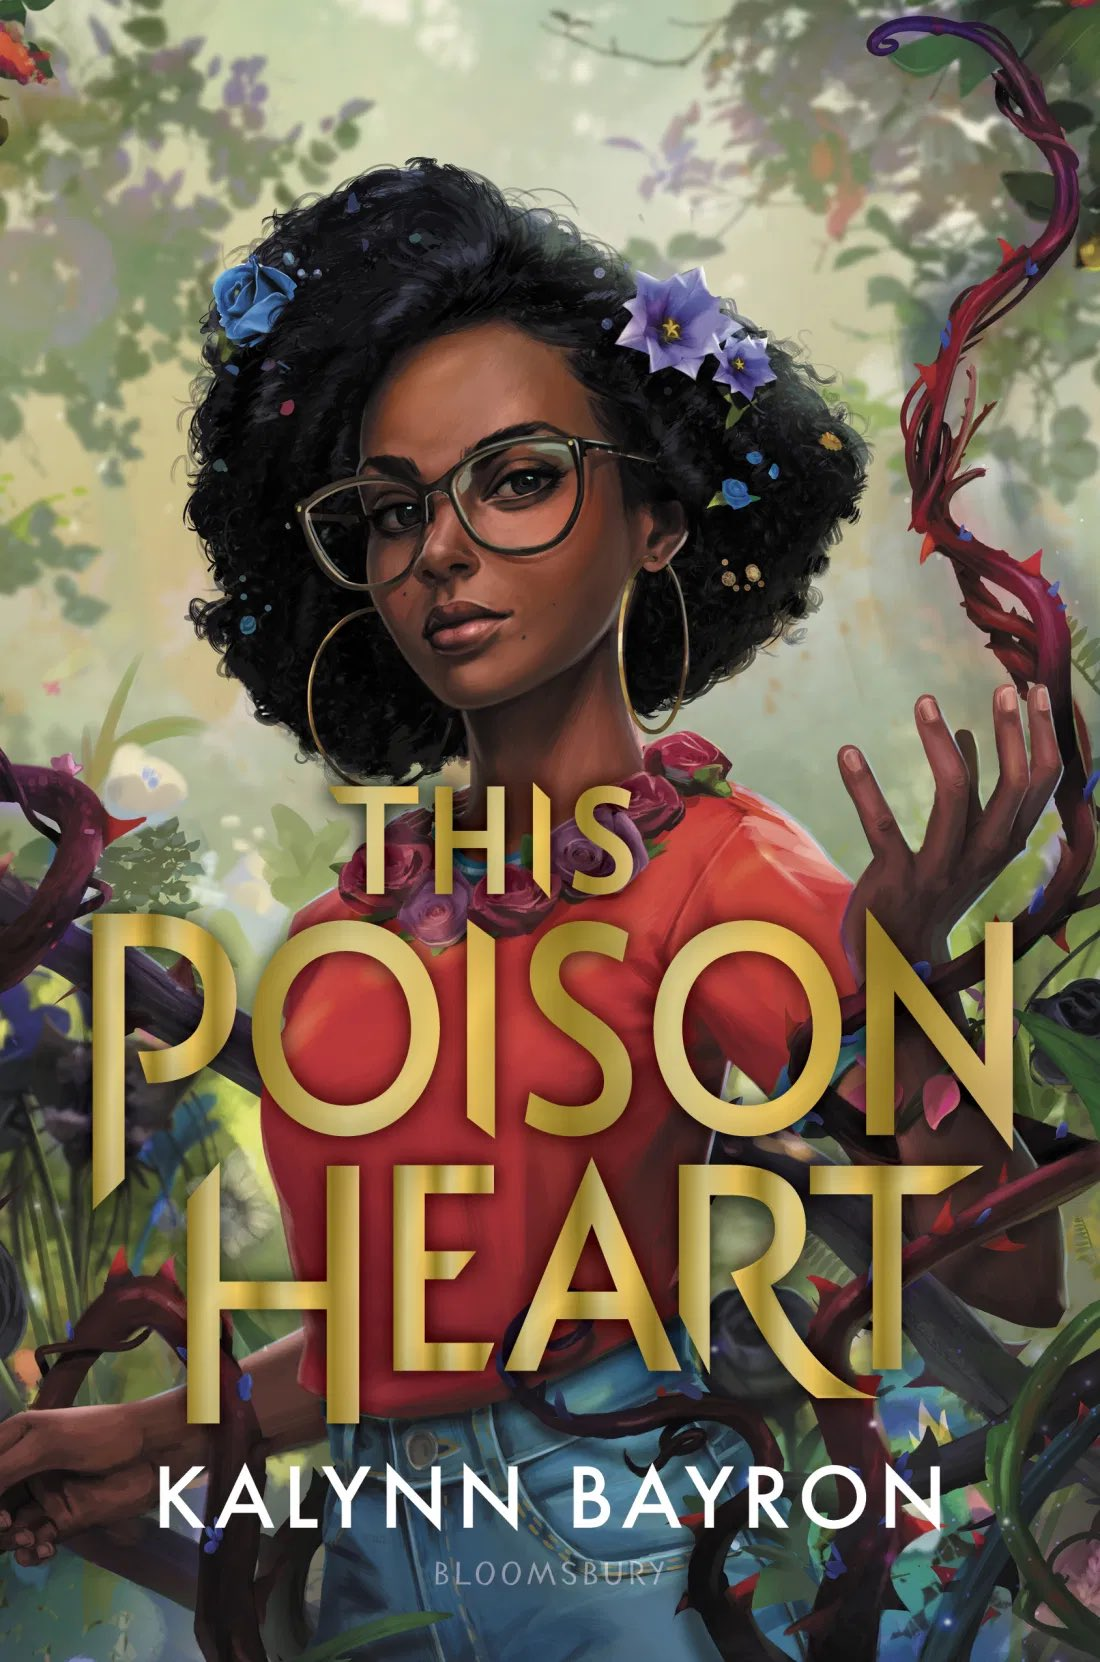 Cover of This Poison Heart by Kalynn Bayron